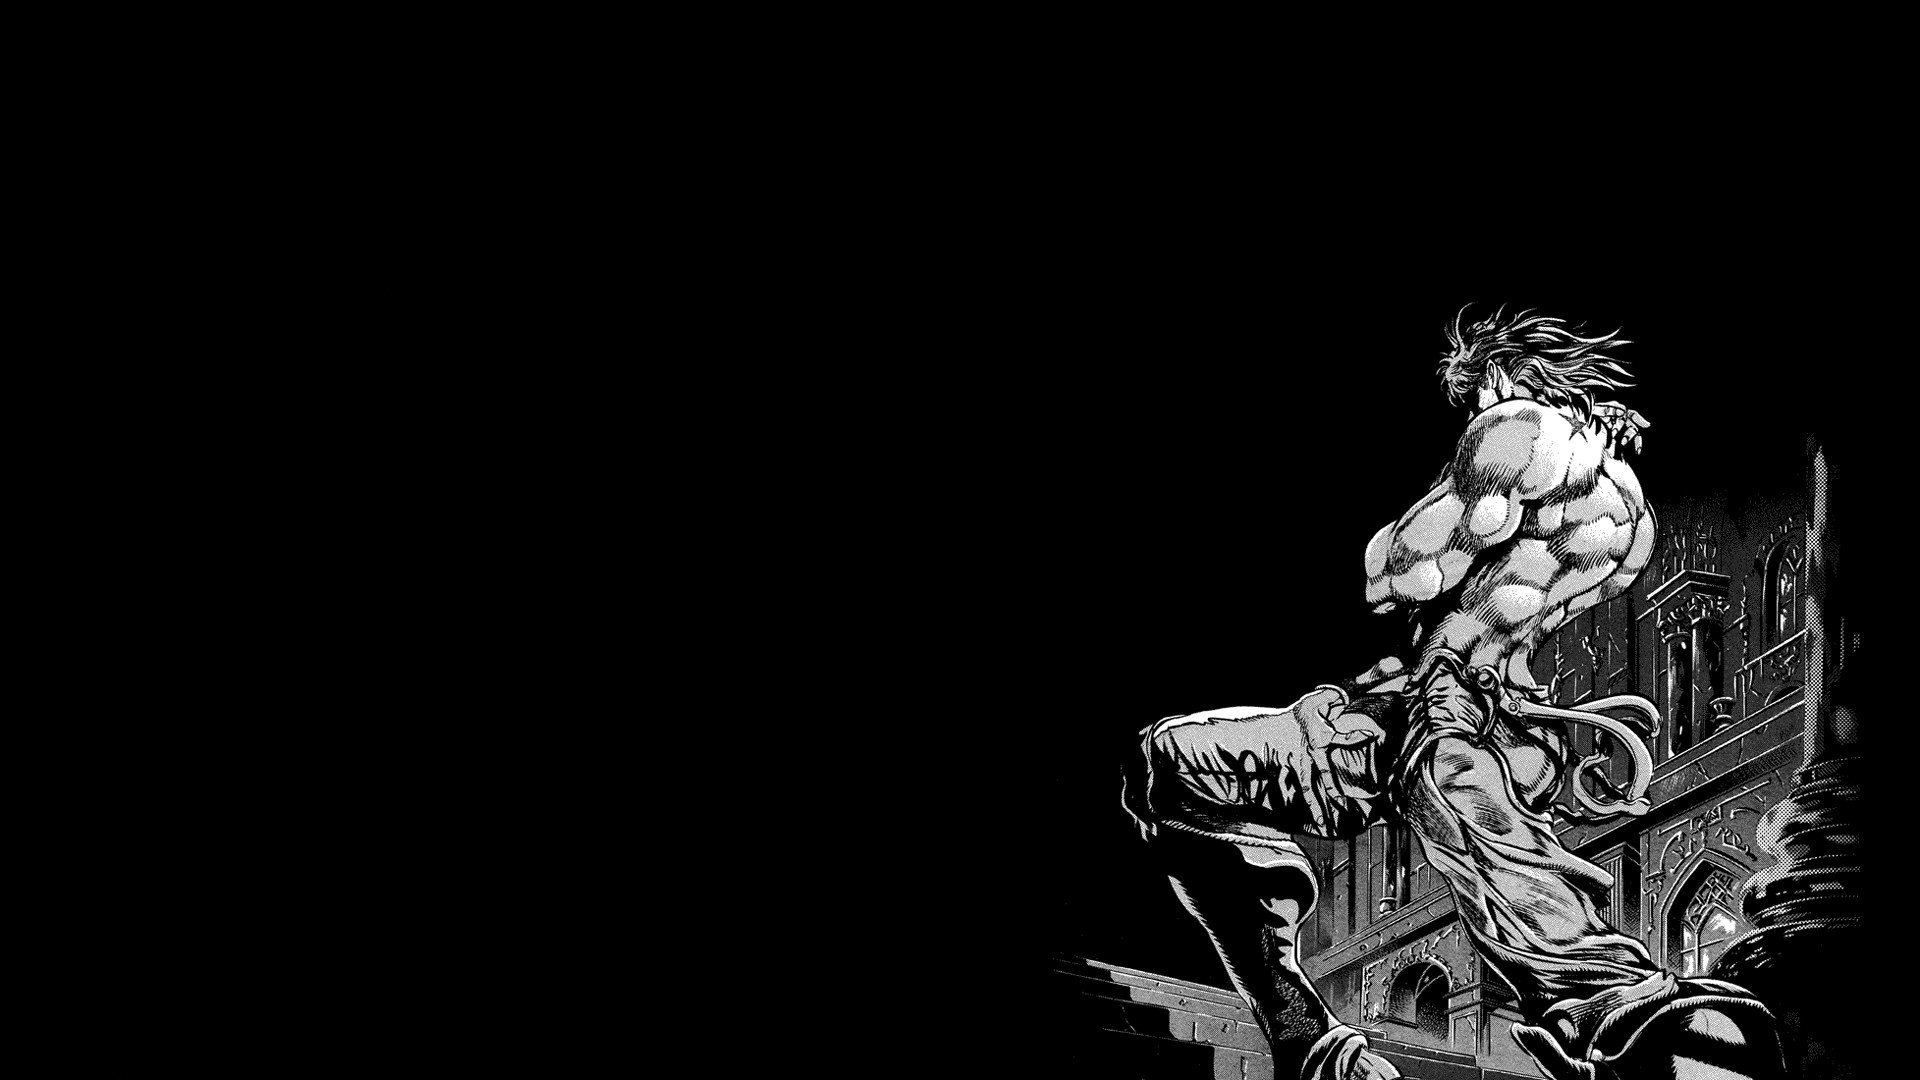 High resolution Jojo's Bizarre Adventure hd 1920x1080 background ID:296867 for desktop